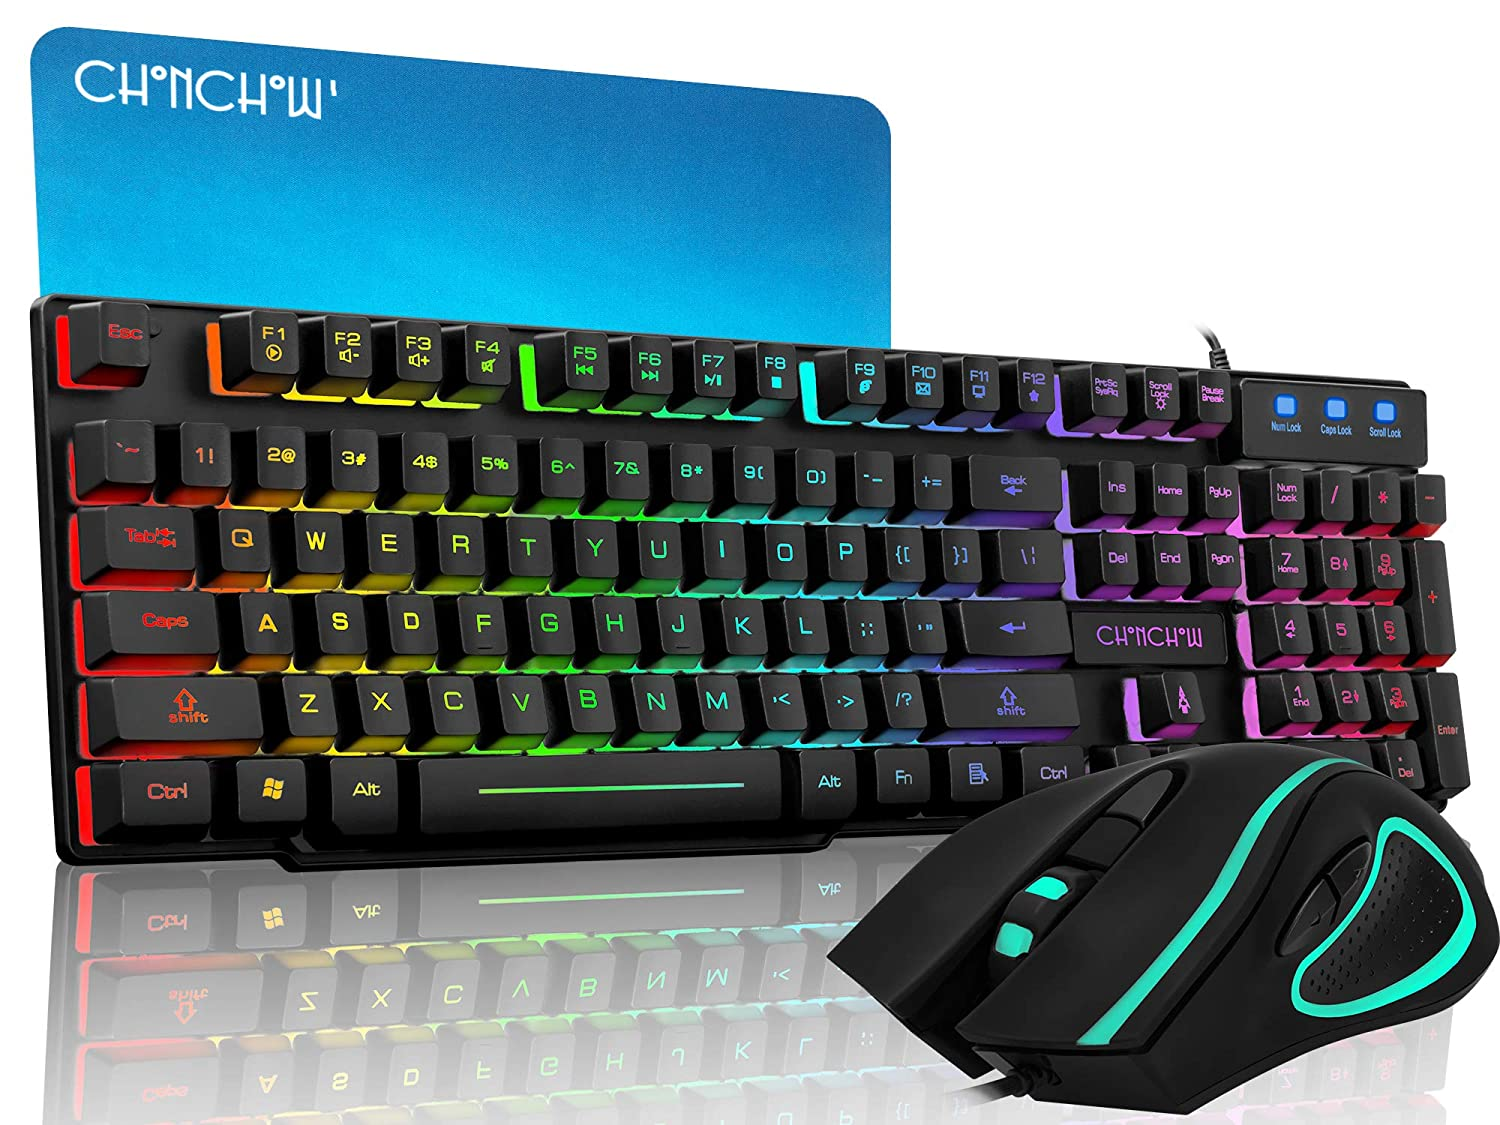 CHONCHOW Rainbow Gaming Keyboard and Mouse Combo Mechanical Feeling Wired LED Backlit Gaming Mouse and Keyboard Emitting Character Compatible with PC Windows PS4 Black